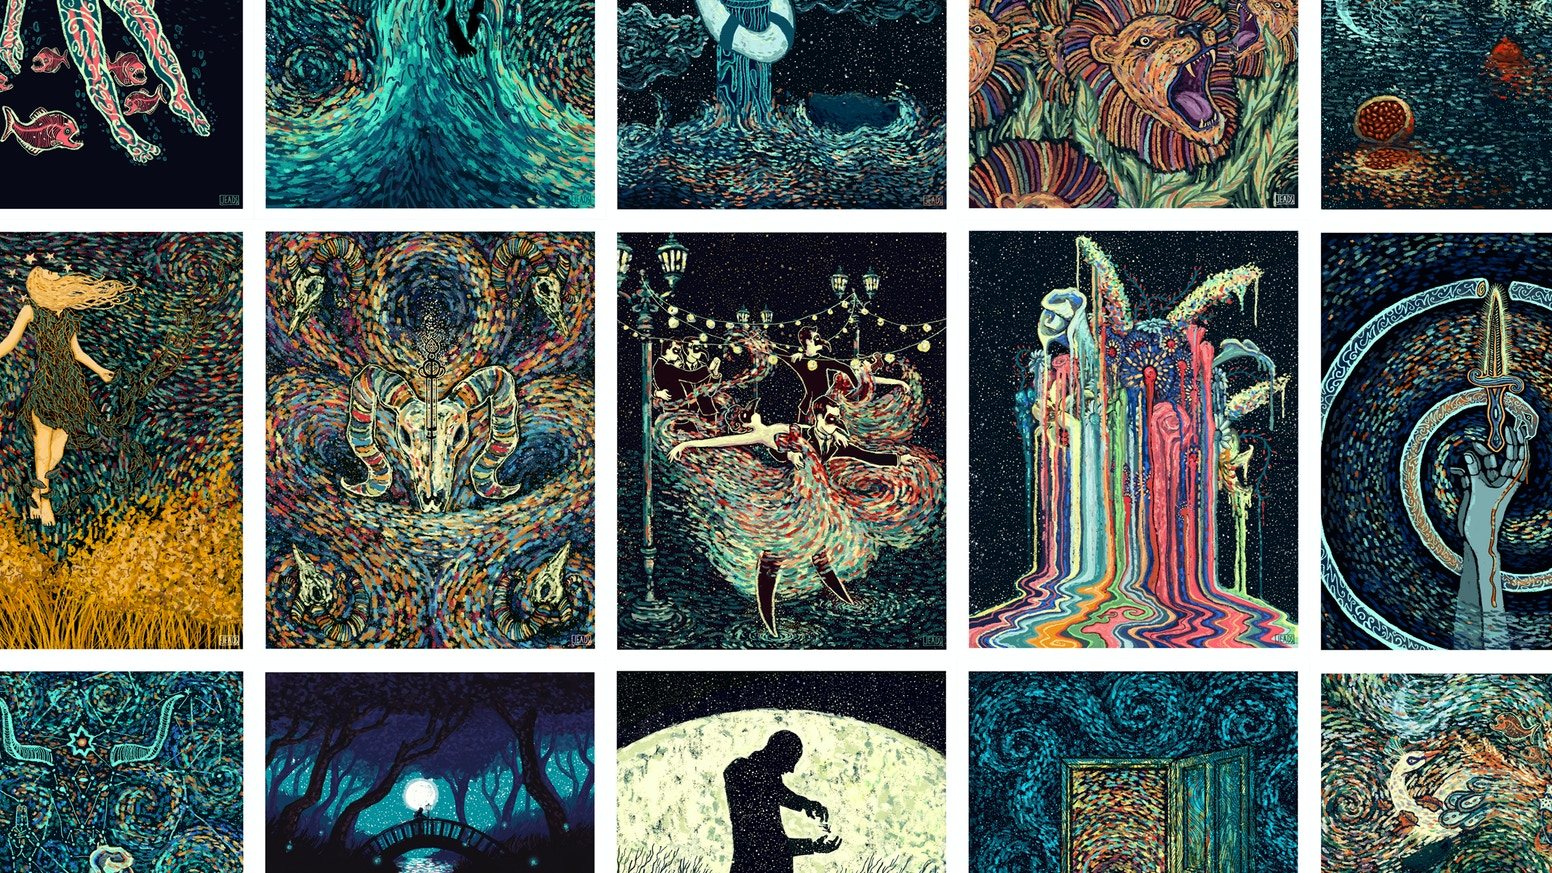 The Visions Project is a comprehensive detailed collection comprised of a  full 78 card tarot deck and a series of 23 prints.